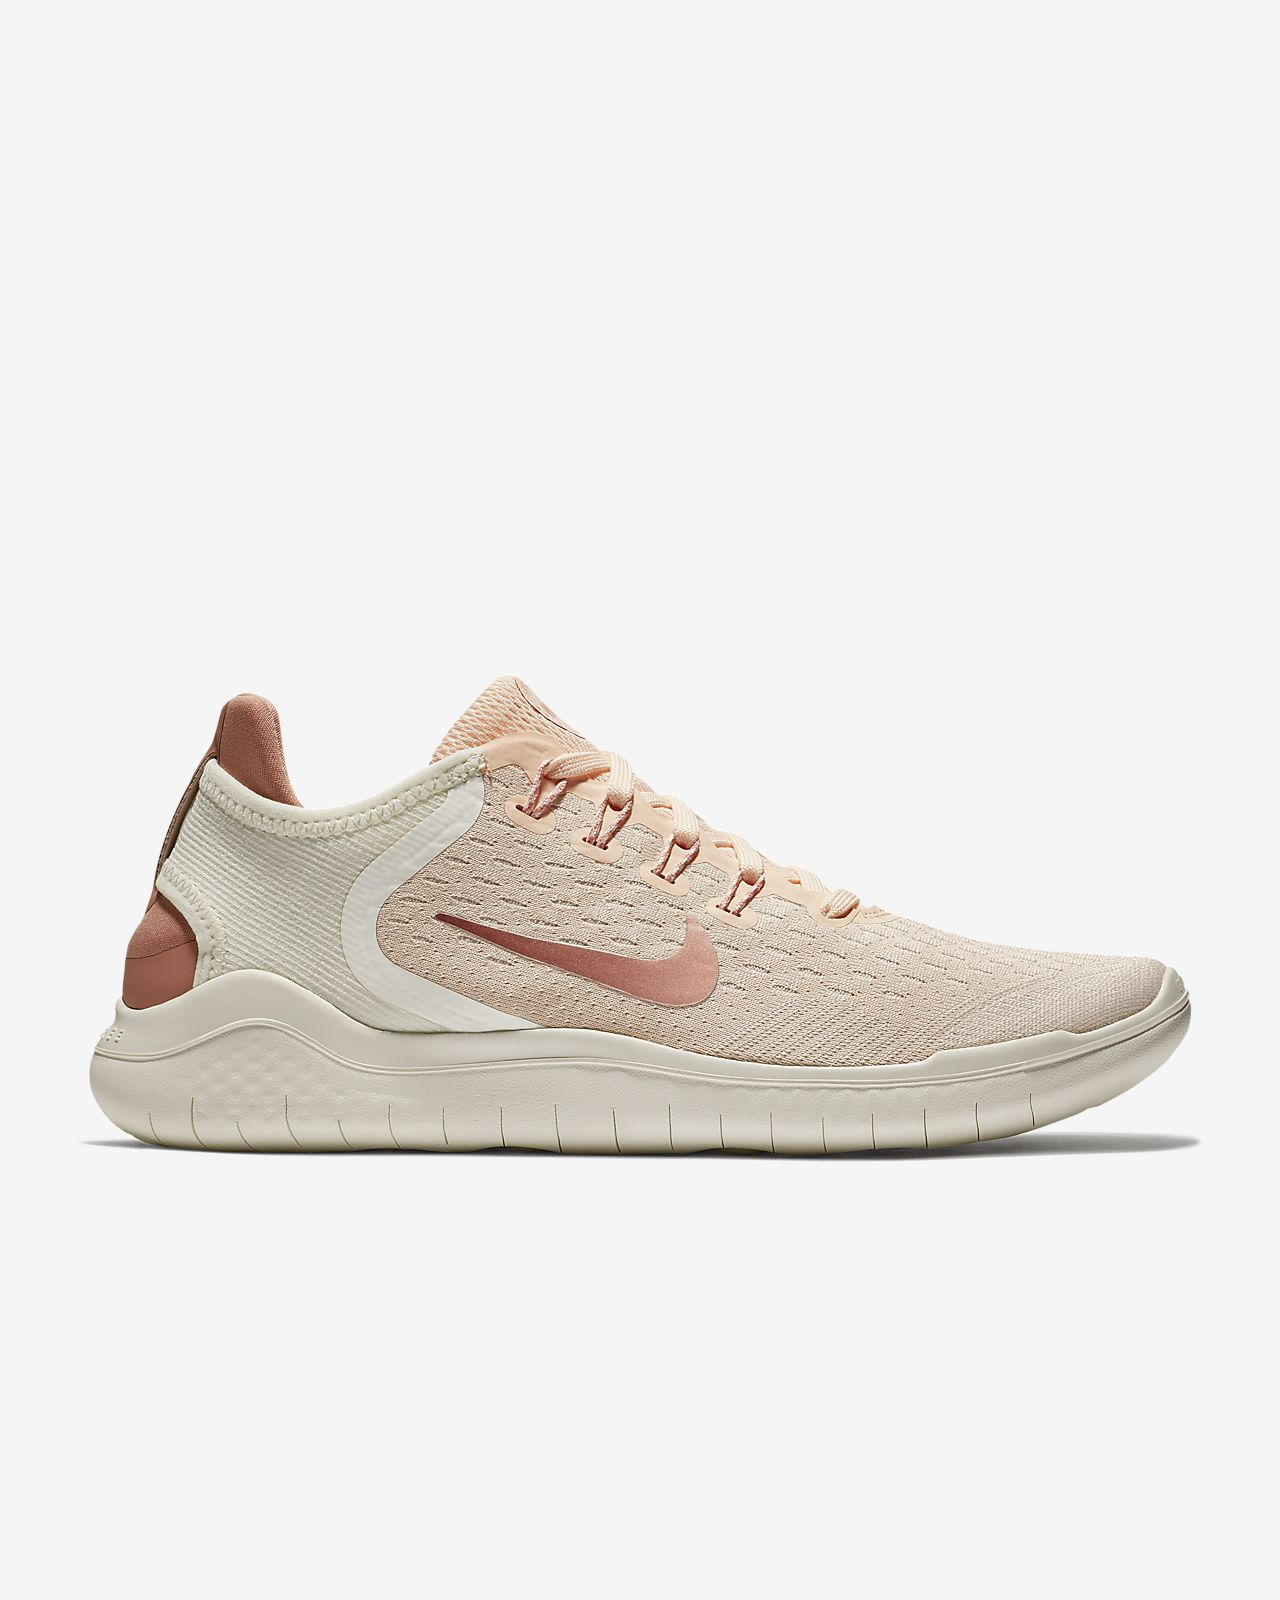 Nike PerformanceFREE RN 2018 - Trainers - guava ice/rust pink/sail/pink tint IWlUIGp6g6